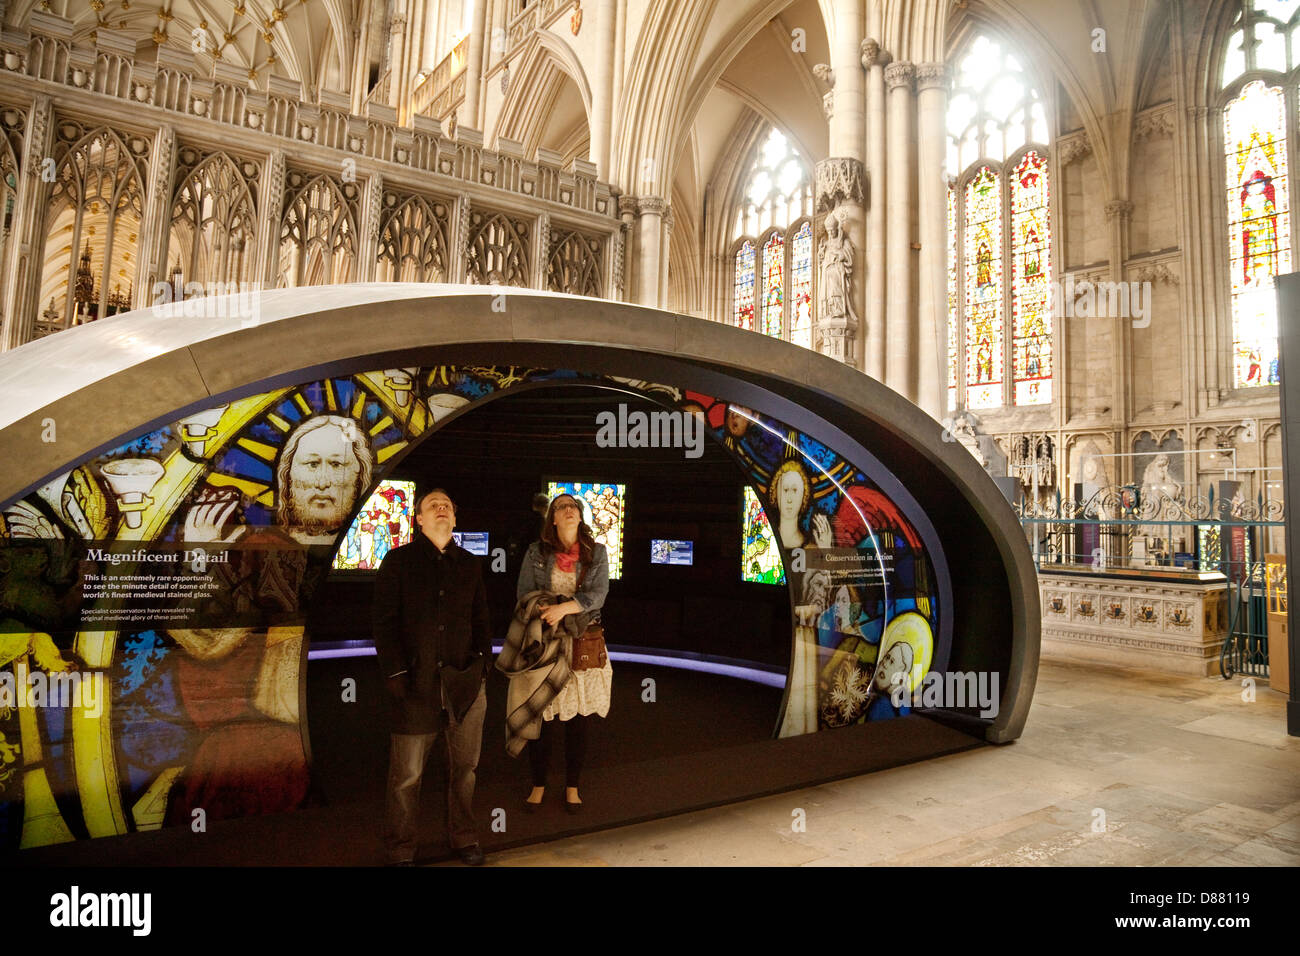 The Orb, giving information about the cathedral, the interior, York Minster Cathedral, York, Yorkshire UK - Stock Image